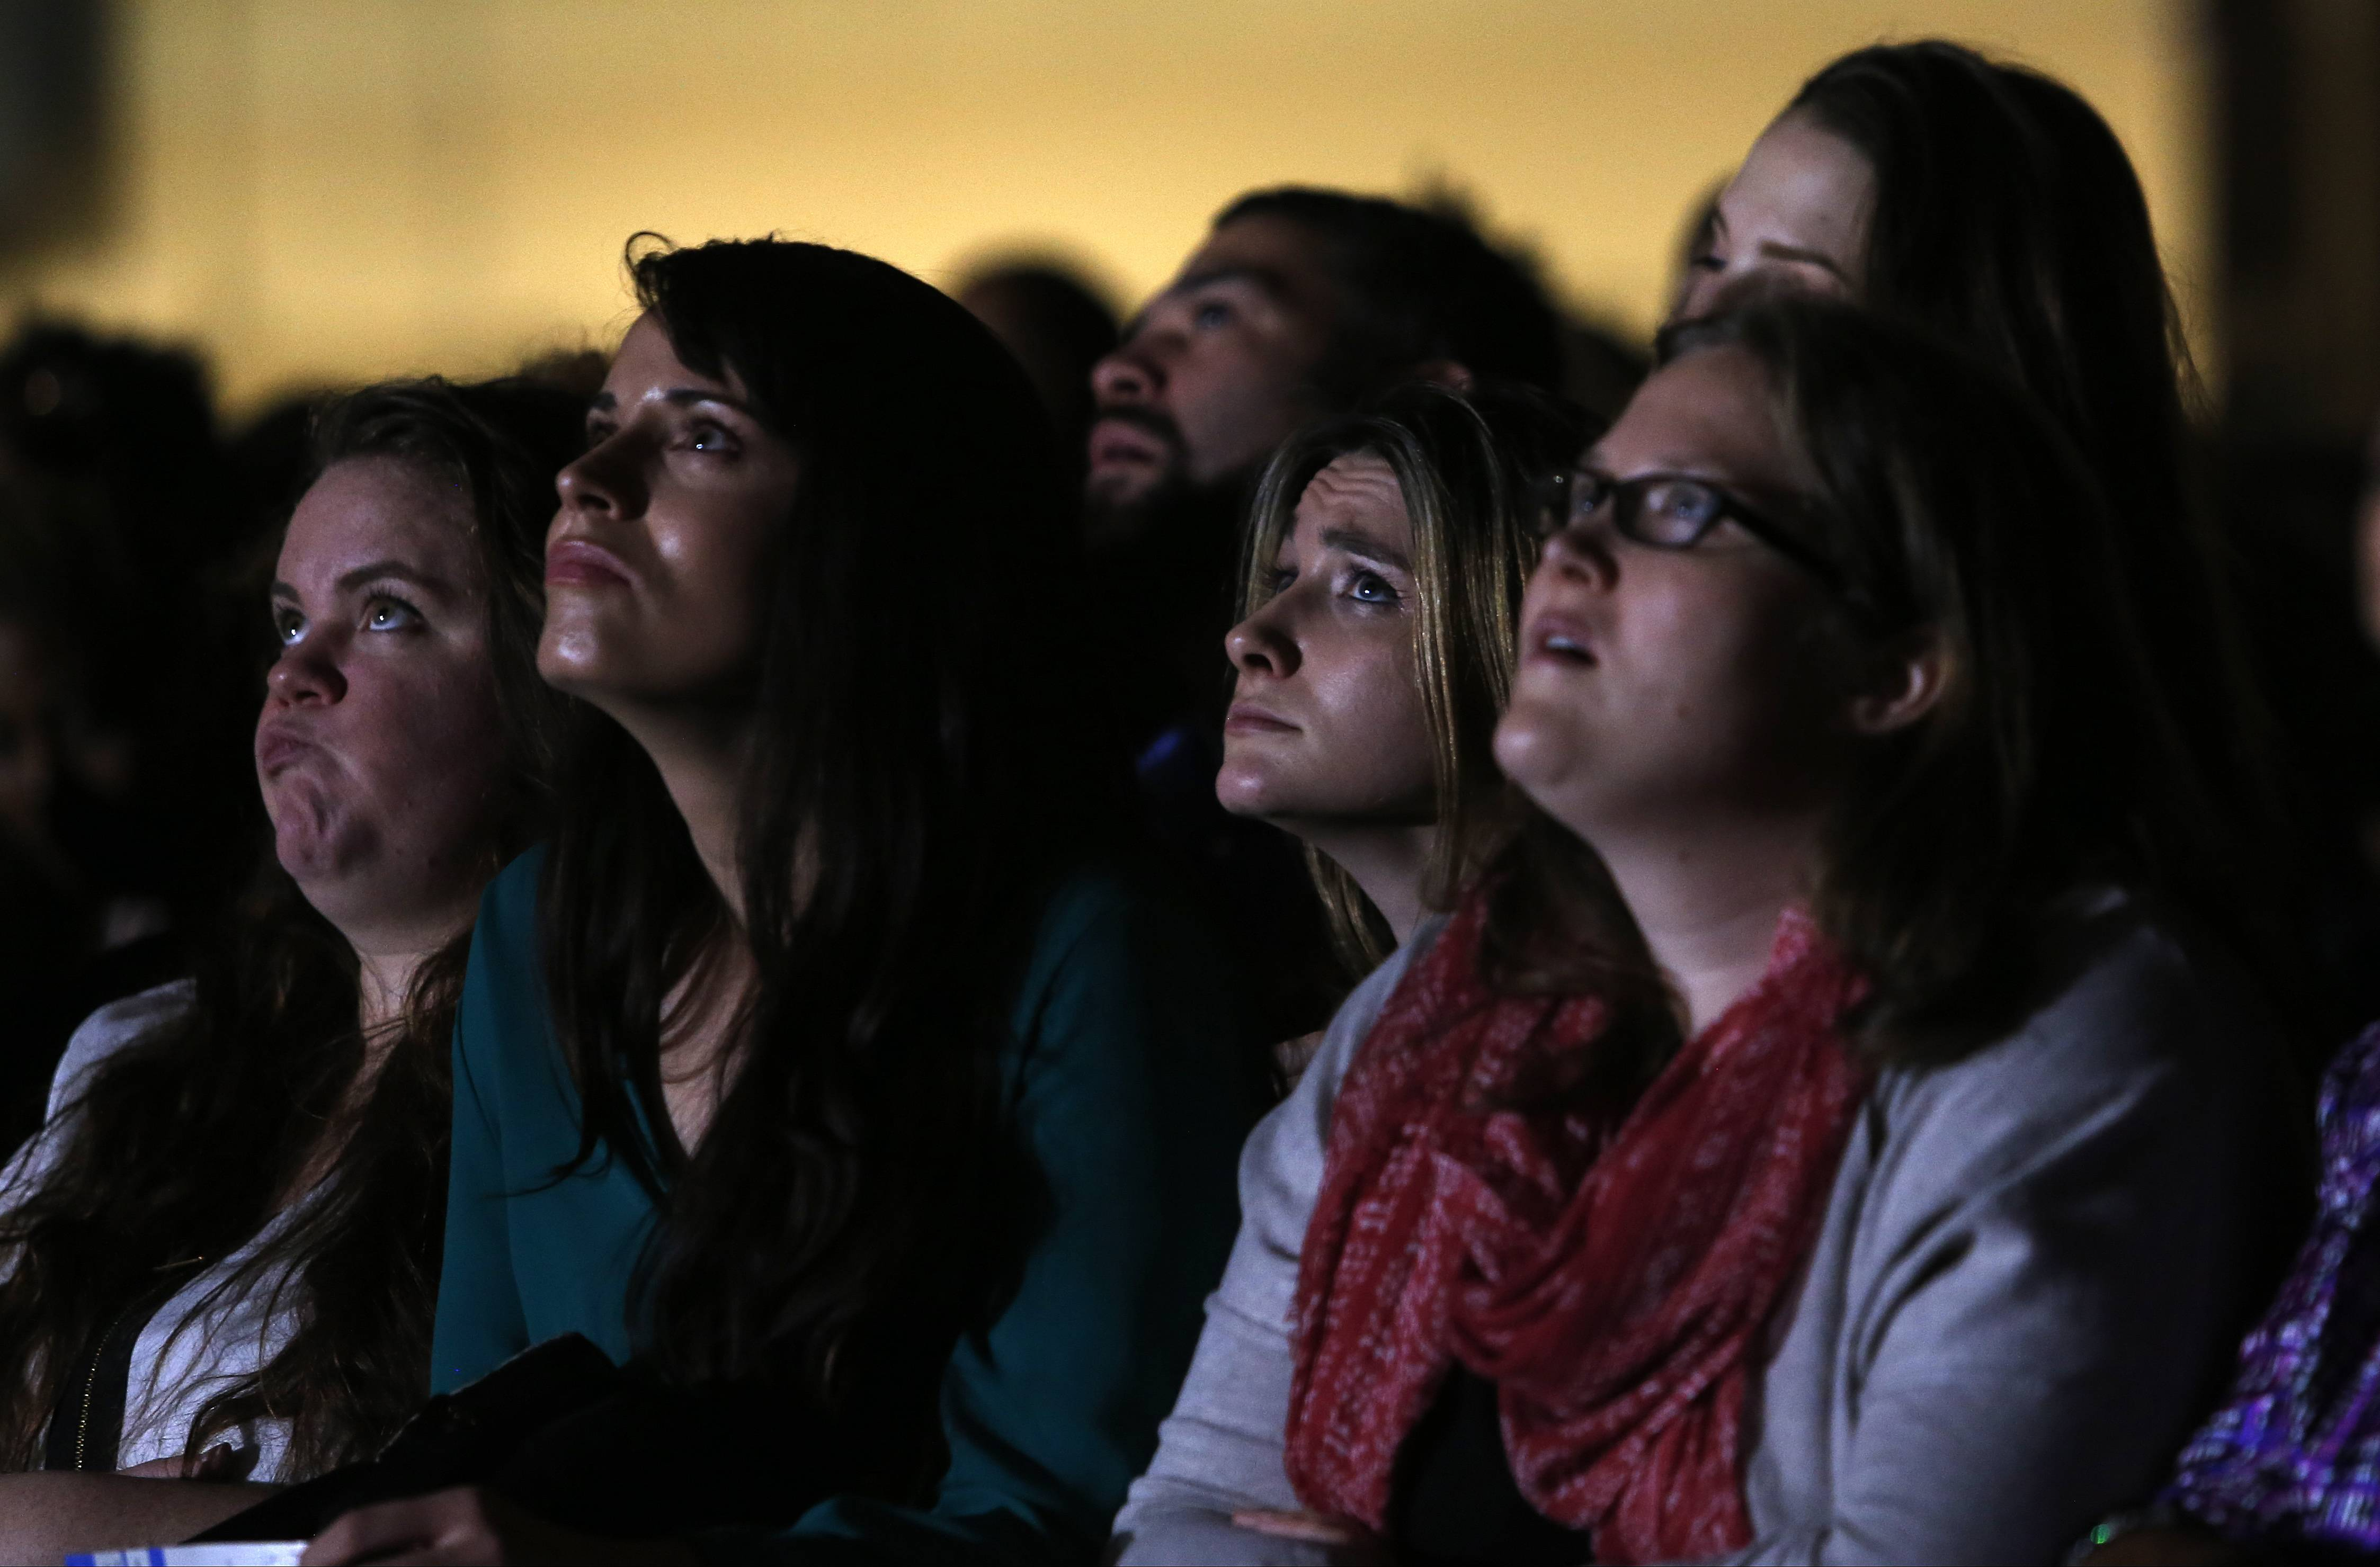 Supporters watch a video presentation before President Barack Obama gives his presidential farewell address at McCormick Place in Chicago, Tuesday.